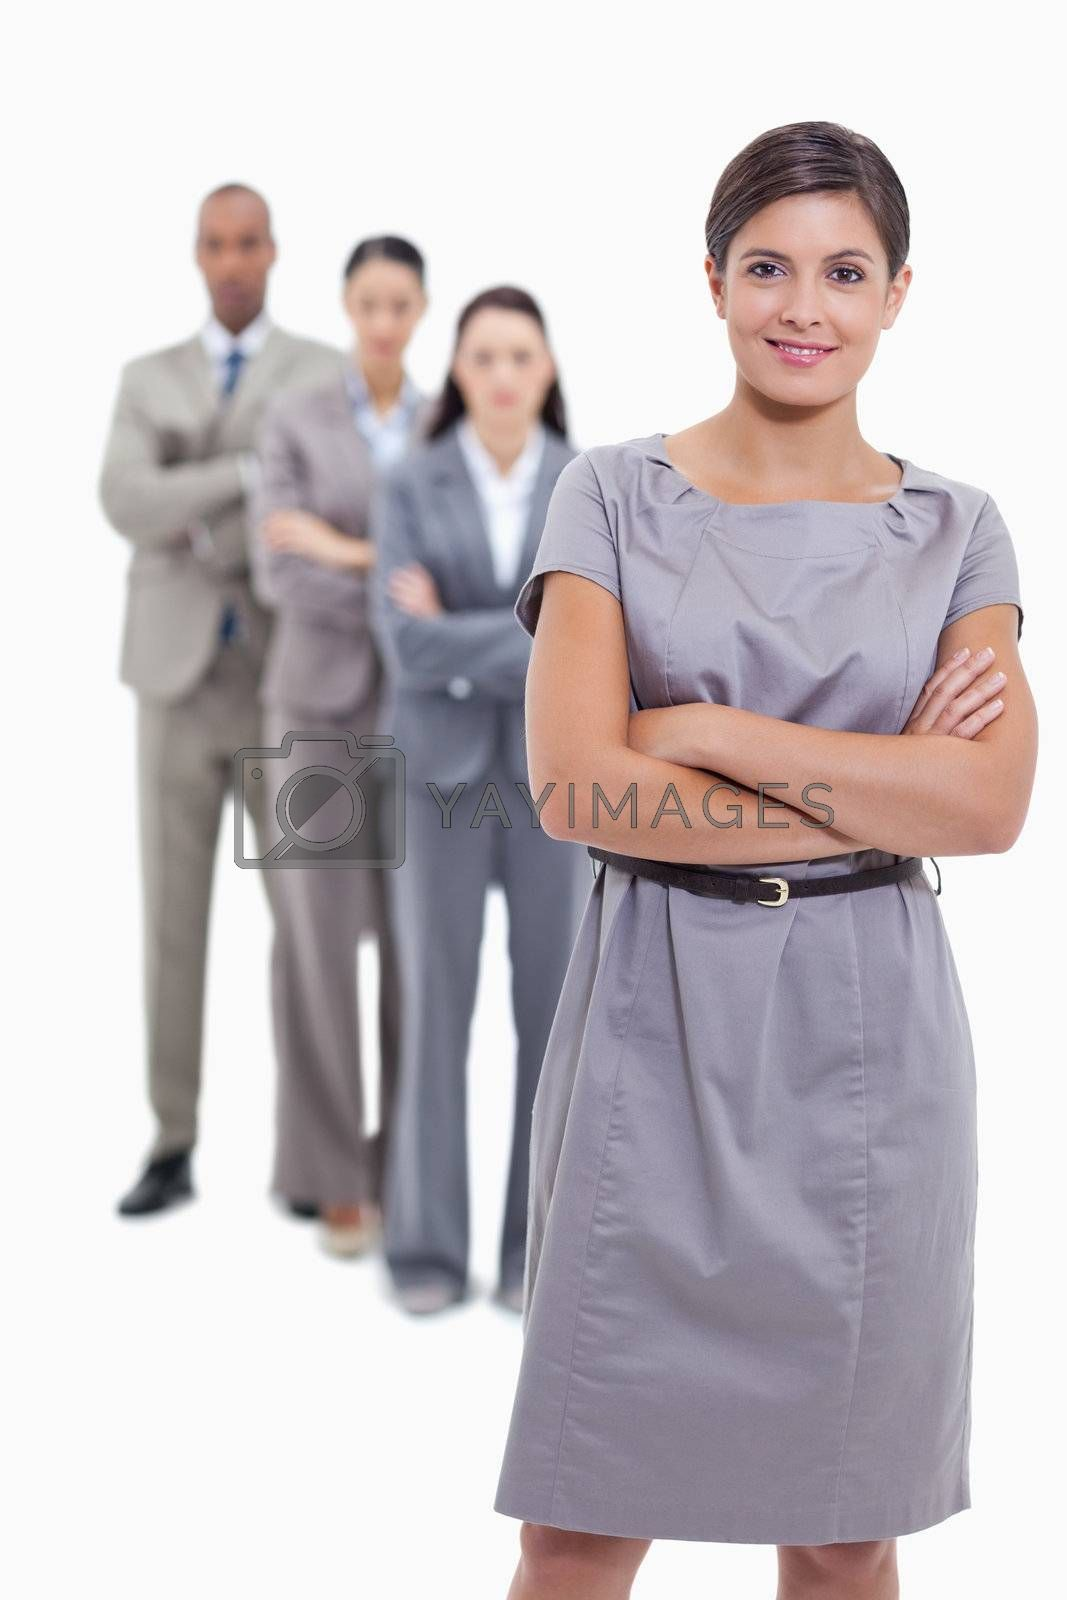 Business team crossing their arms and standing behind each other with focus on the foreground woman who is smiling